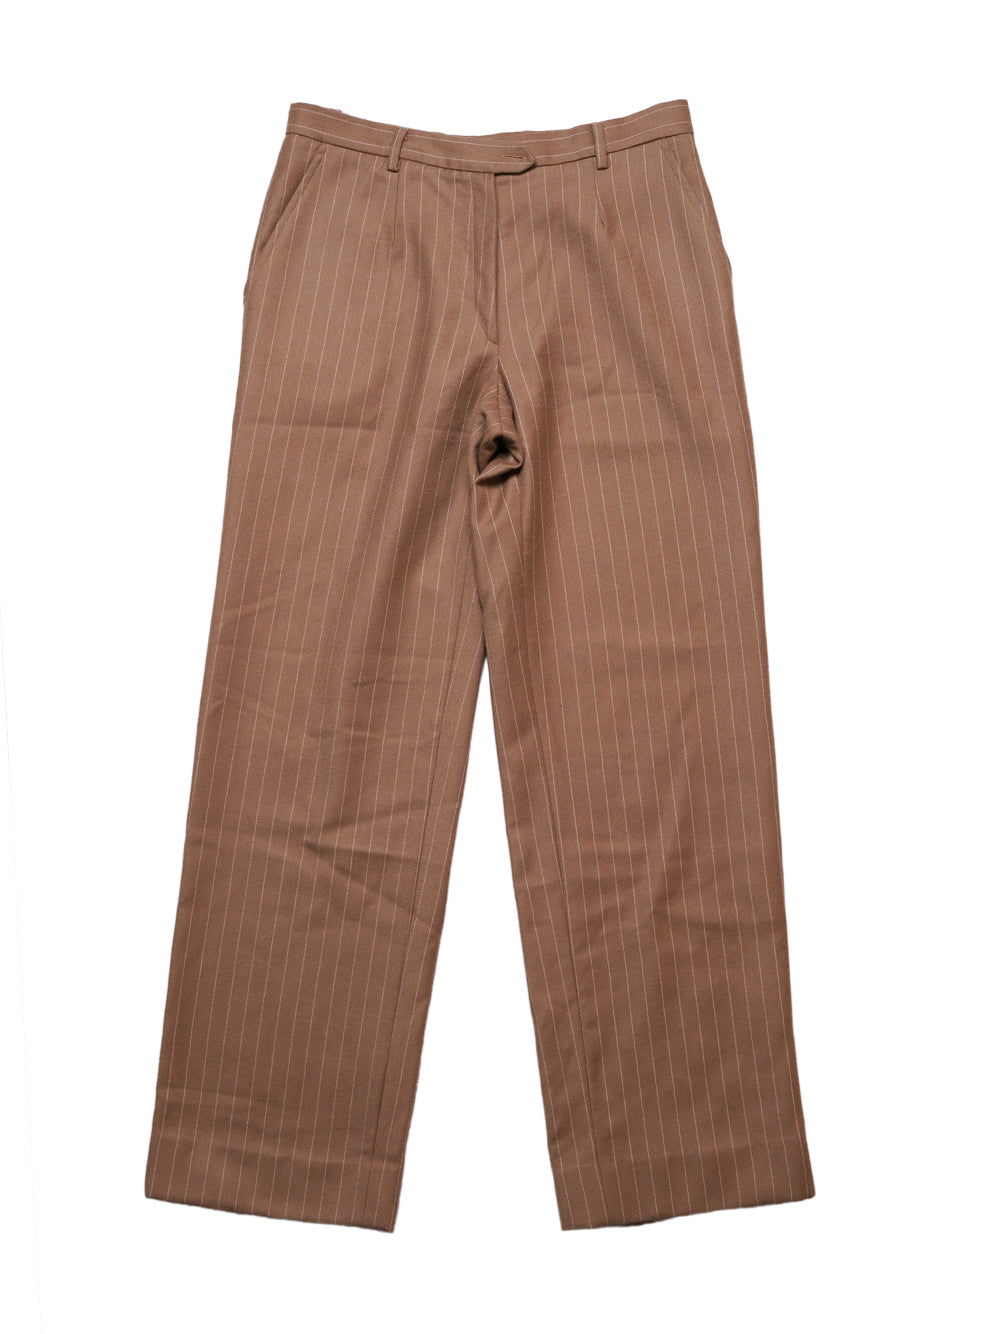 Front photo of Preloved valentini Beige Woman's trousers - size 10/M